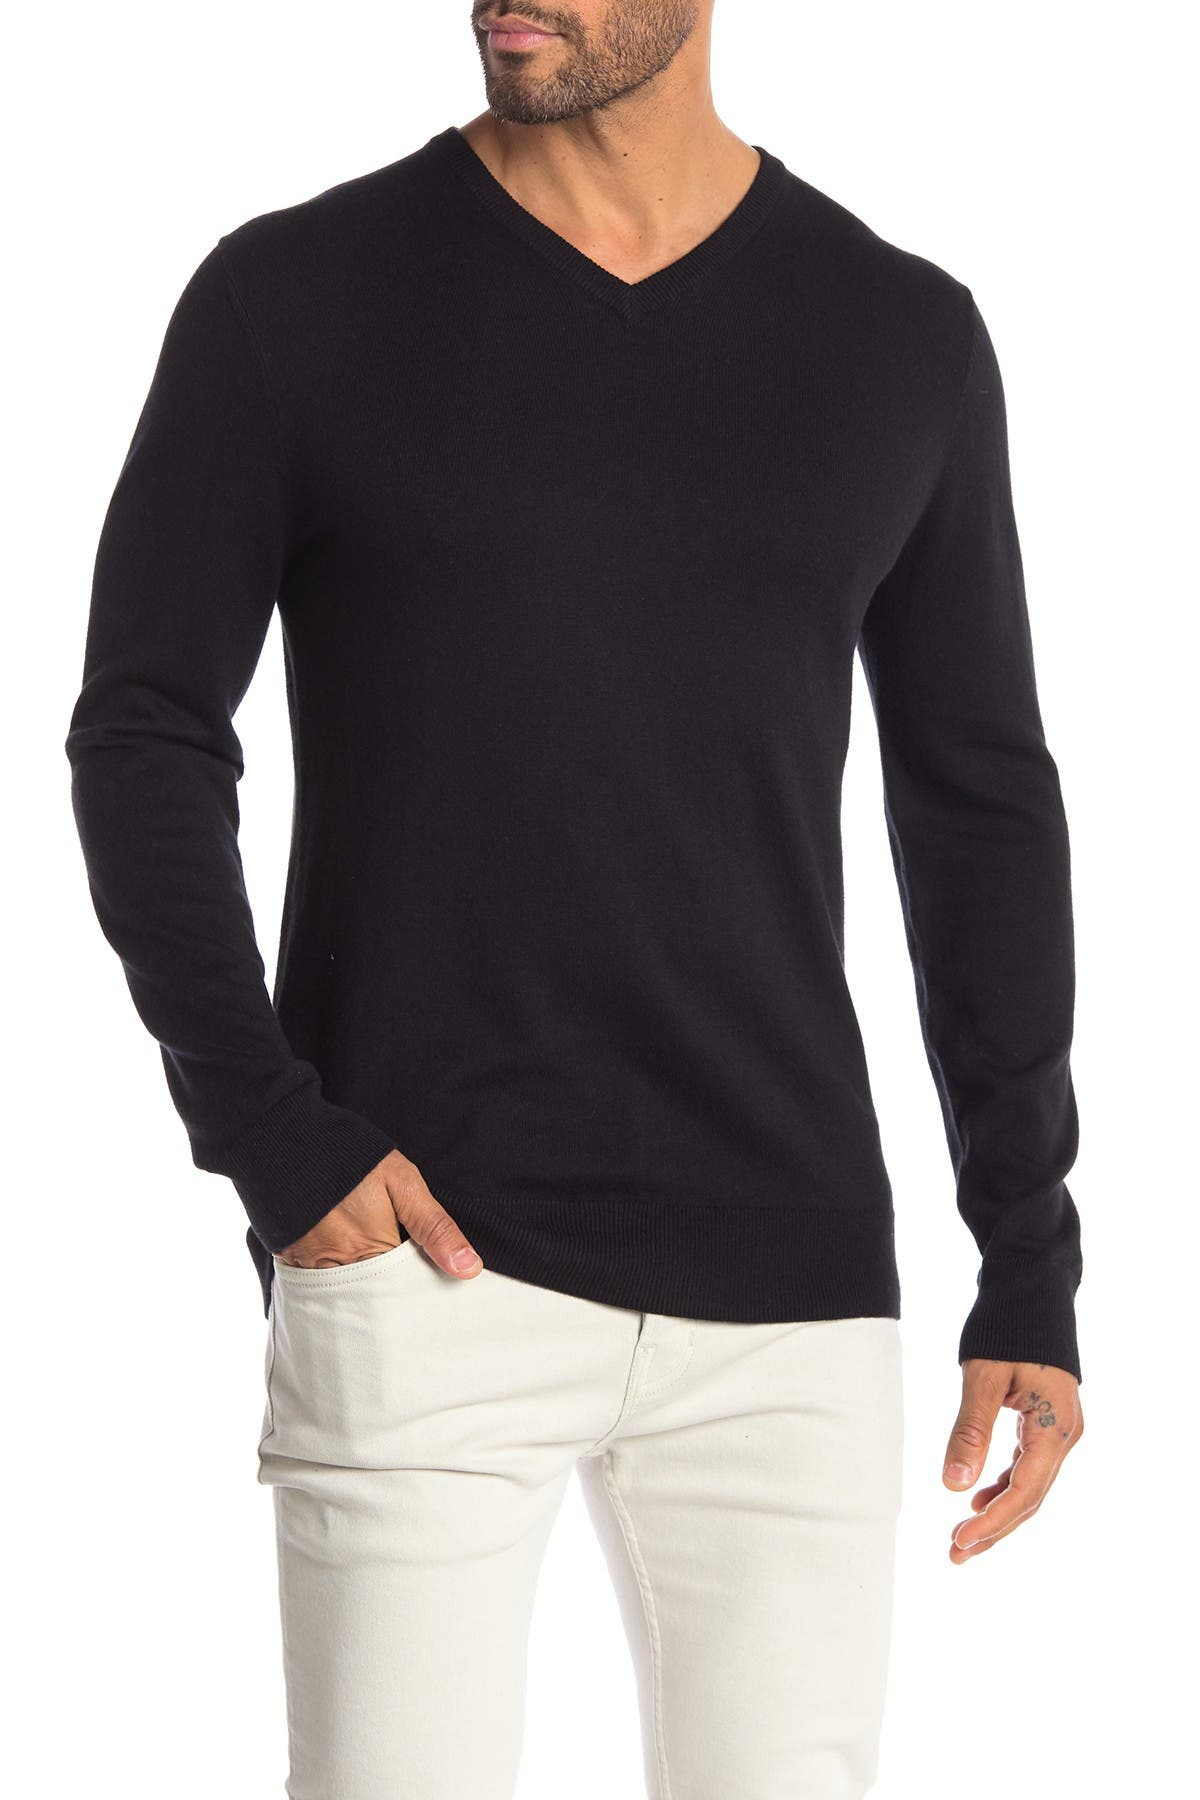 Image of WALLIN & BROS Solid V-Neck Sweater